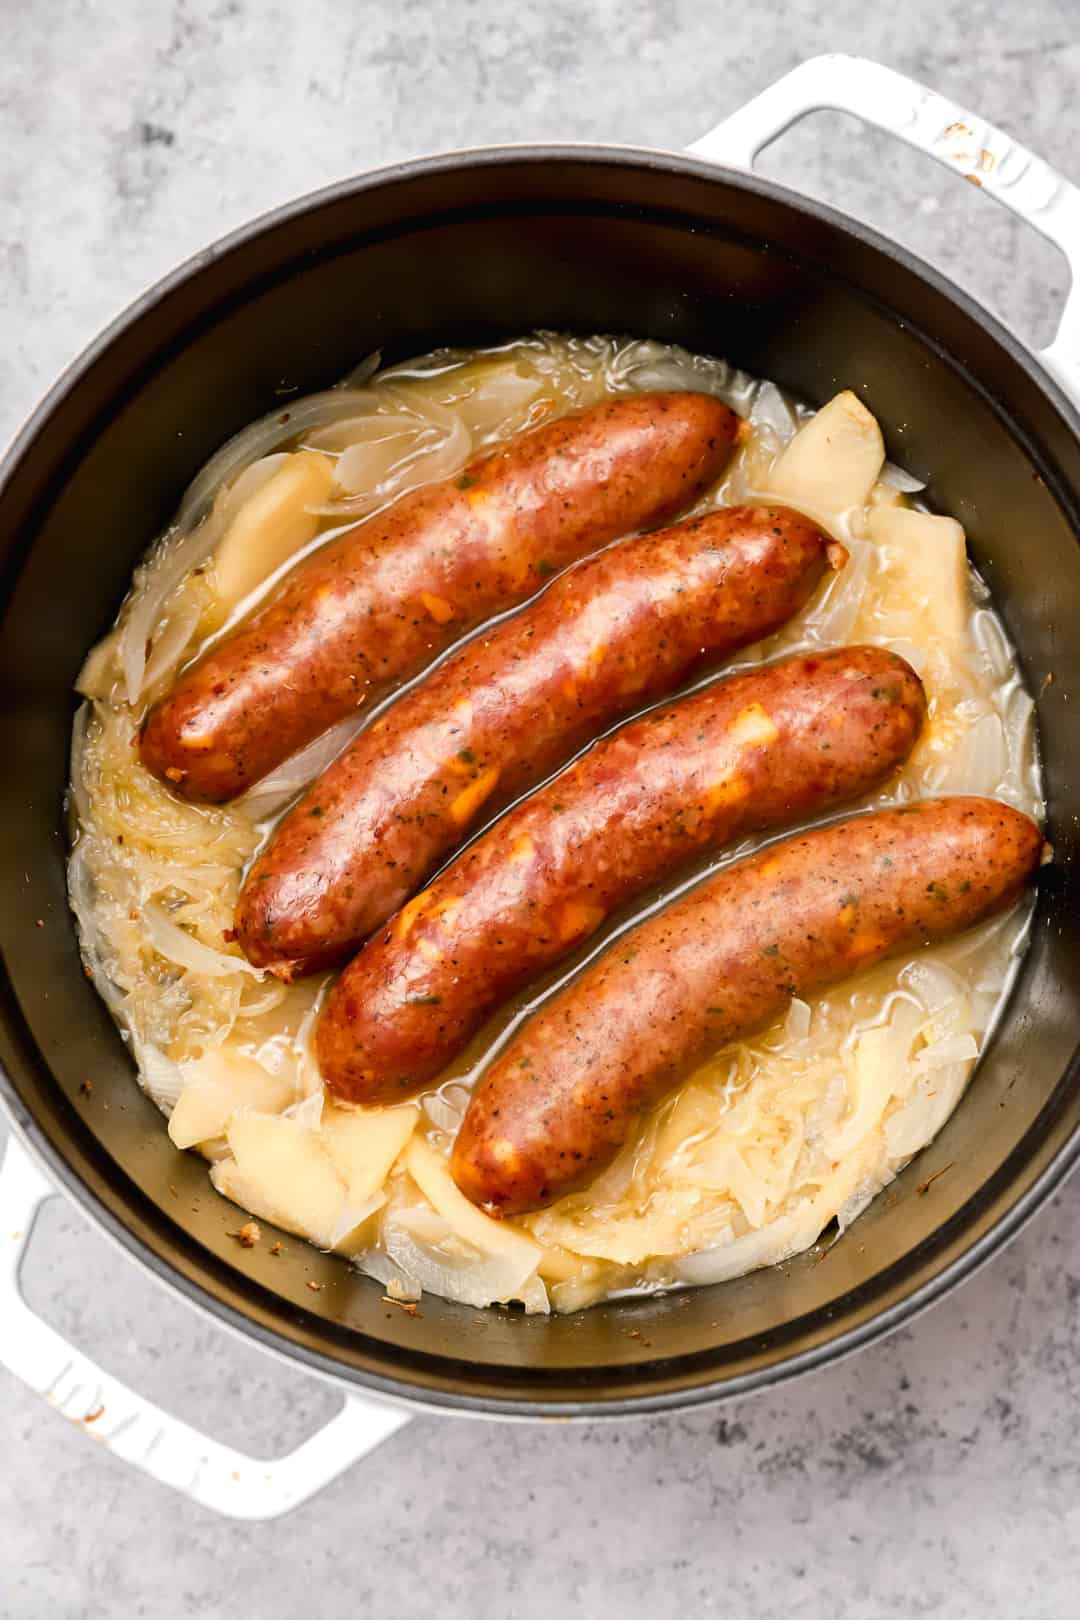 Cooking beer brats in the oven